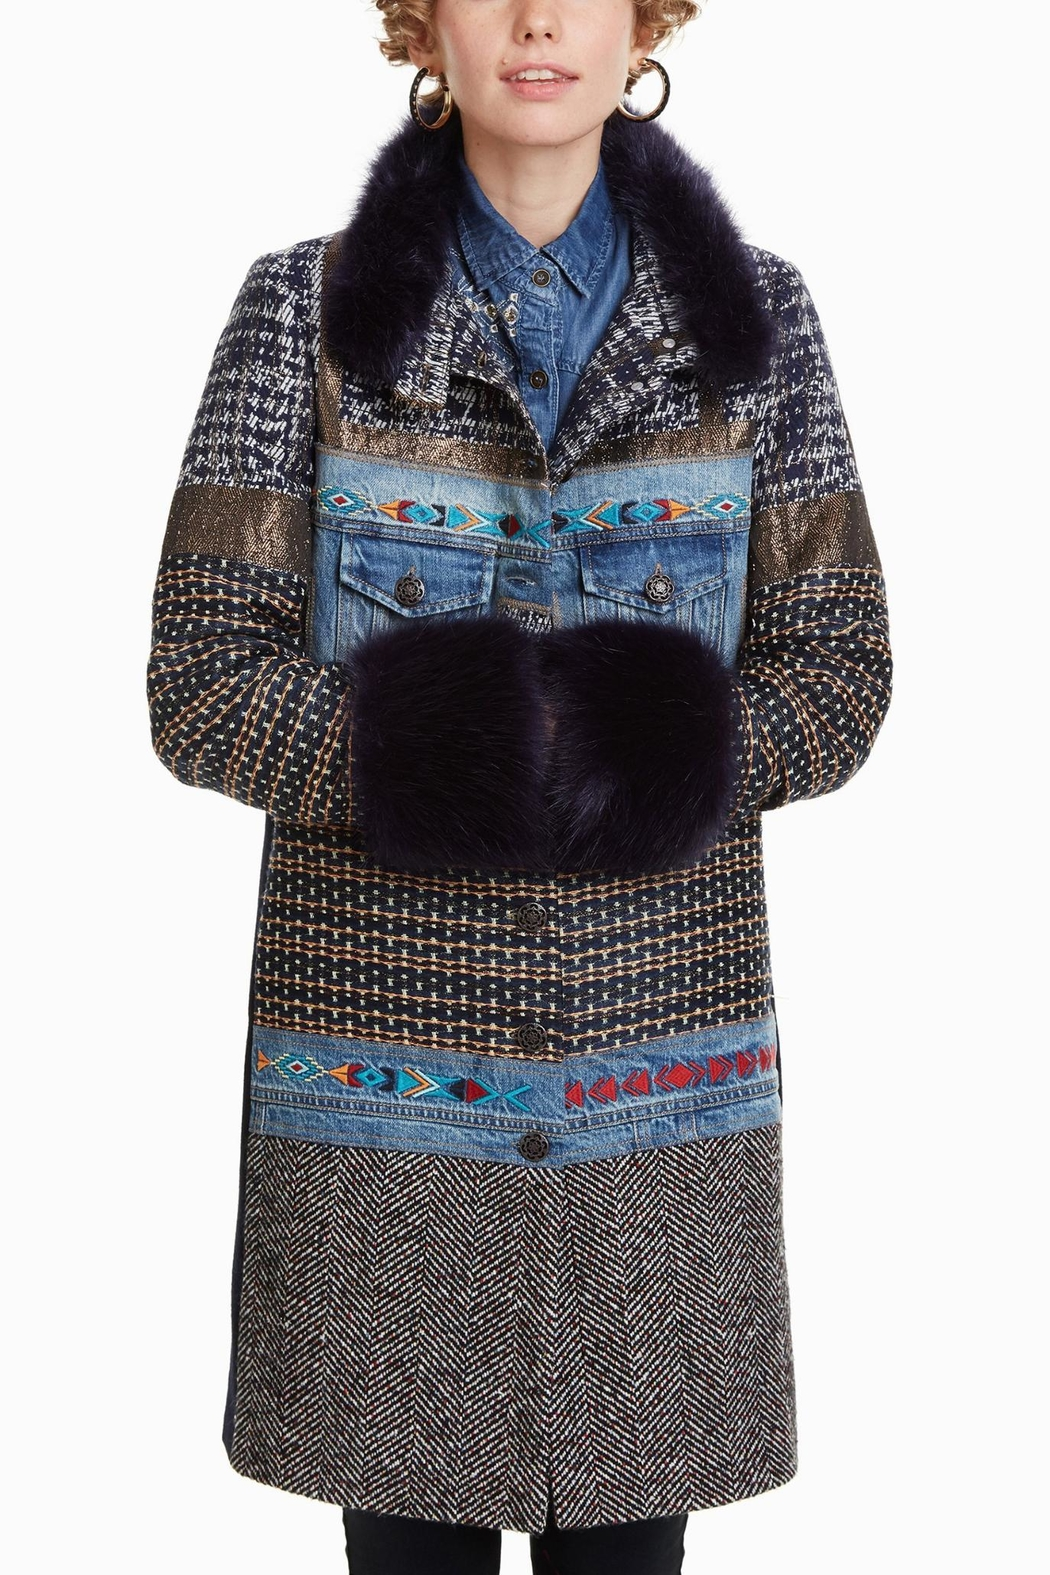 Desigual Sabrina Mixed Media Coat From Hudson Valley By Maria Luisa Swing Sleeves Front Cropped Image